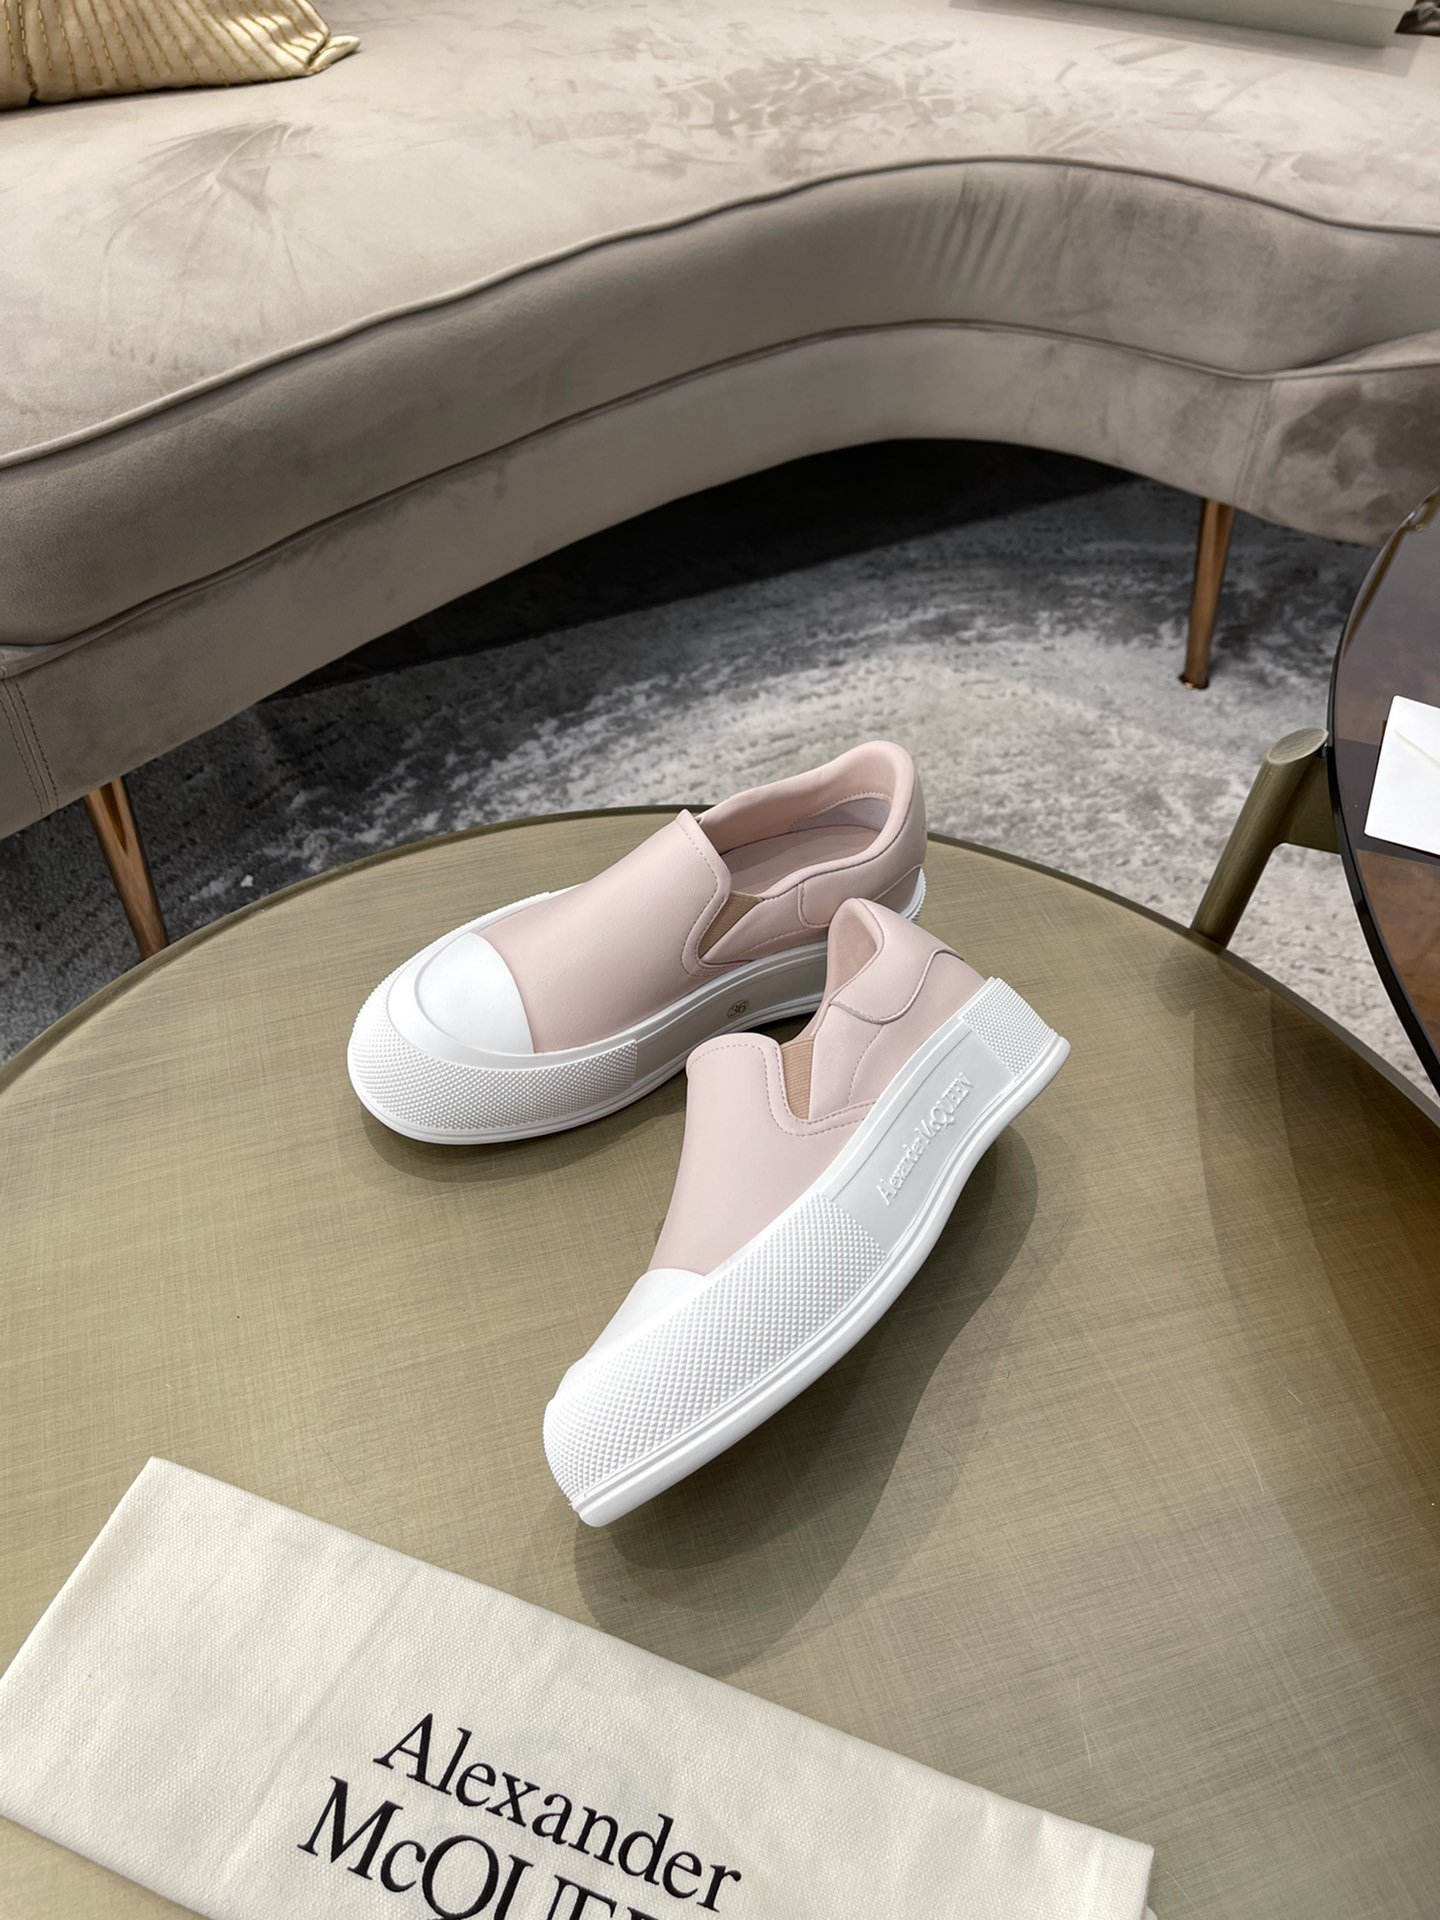 Image of Alexander McQueen Woman's Men's 2021 New Fashion Casual Shoes Sneaker Sport Running Shoes06120yph